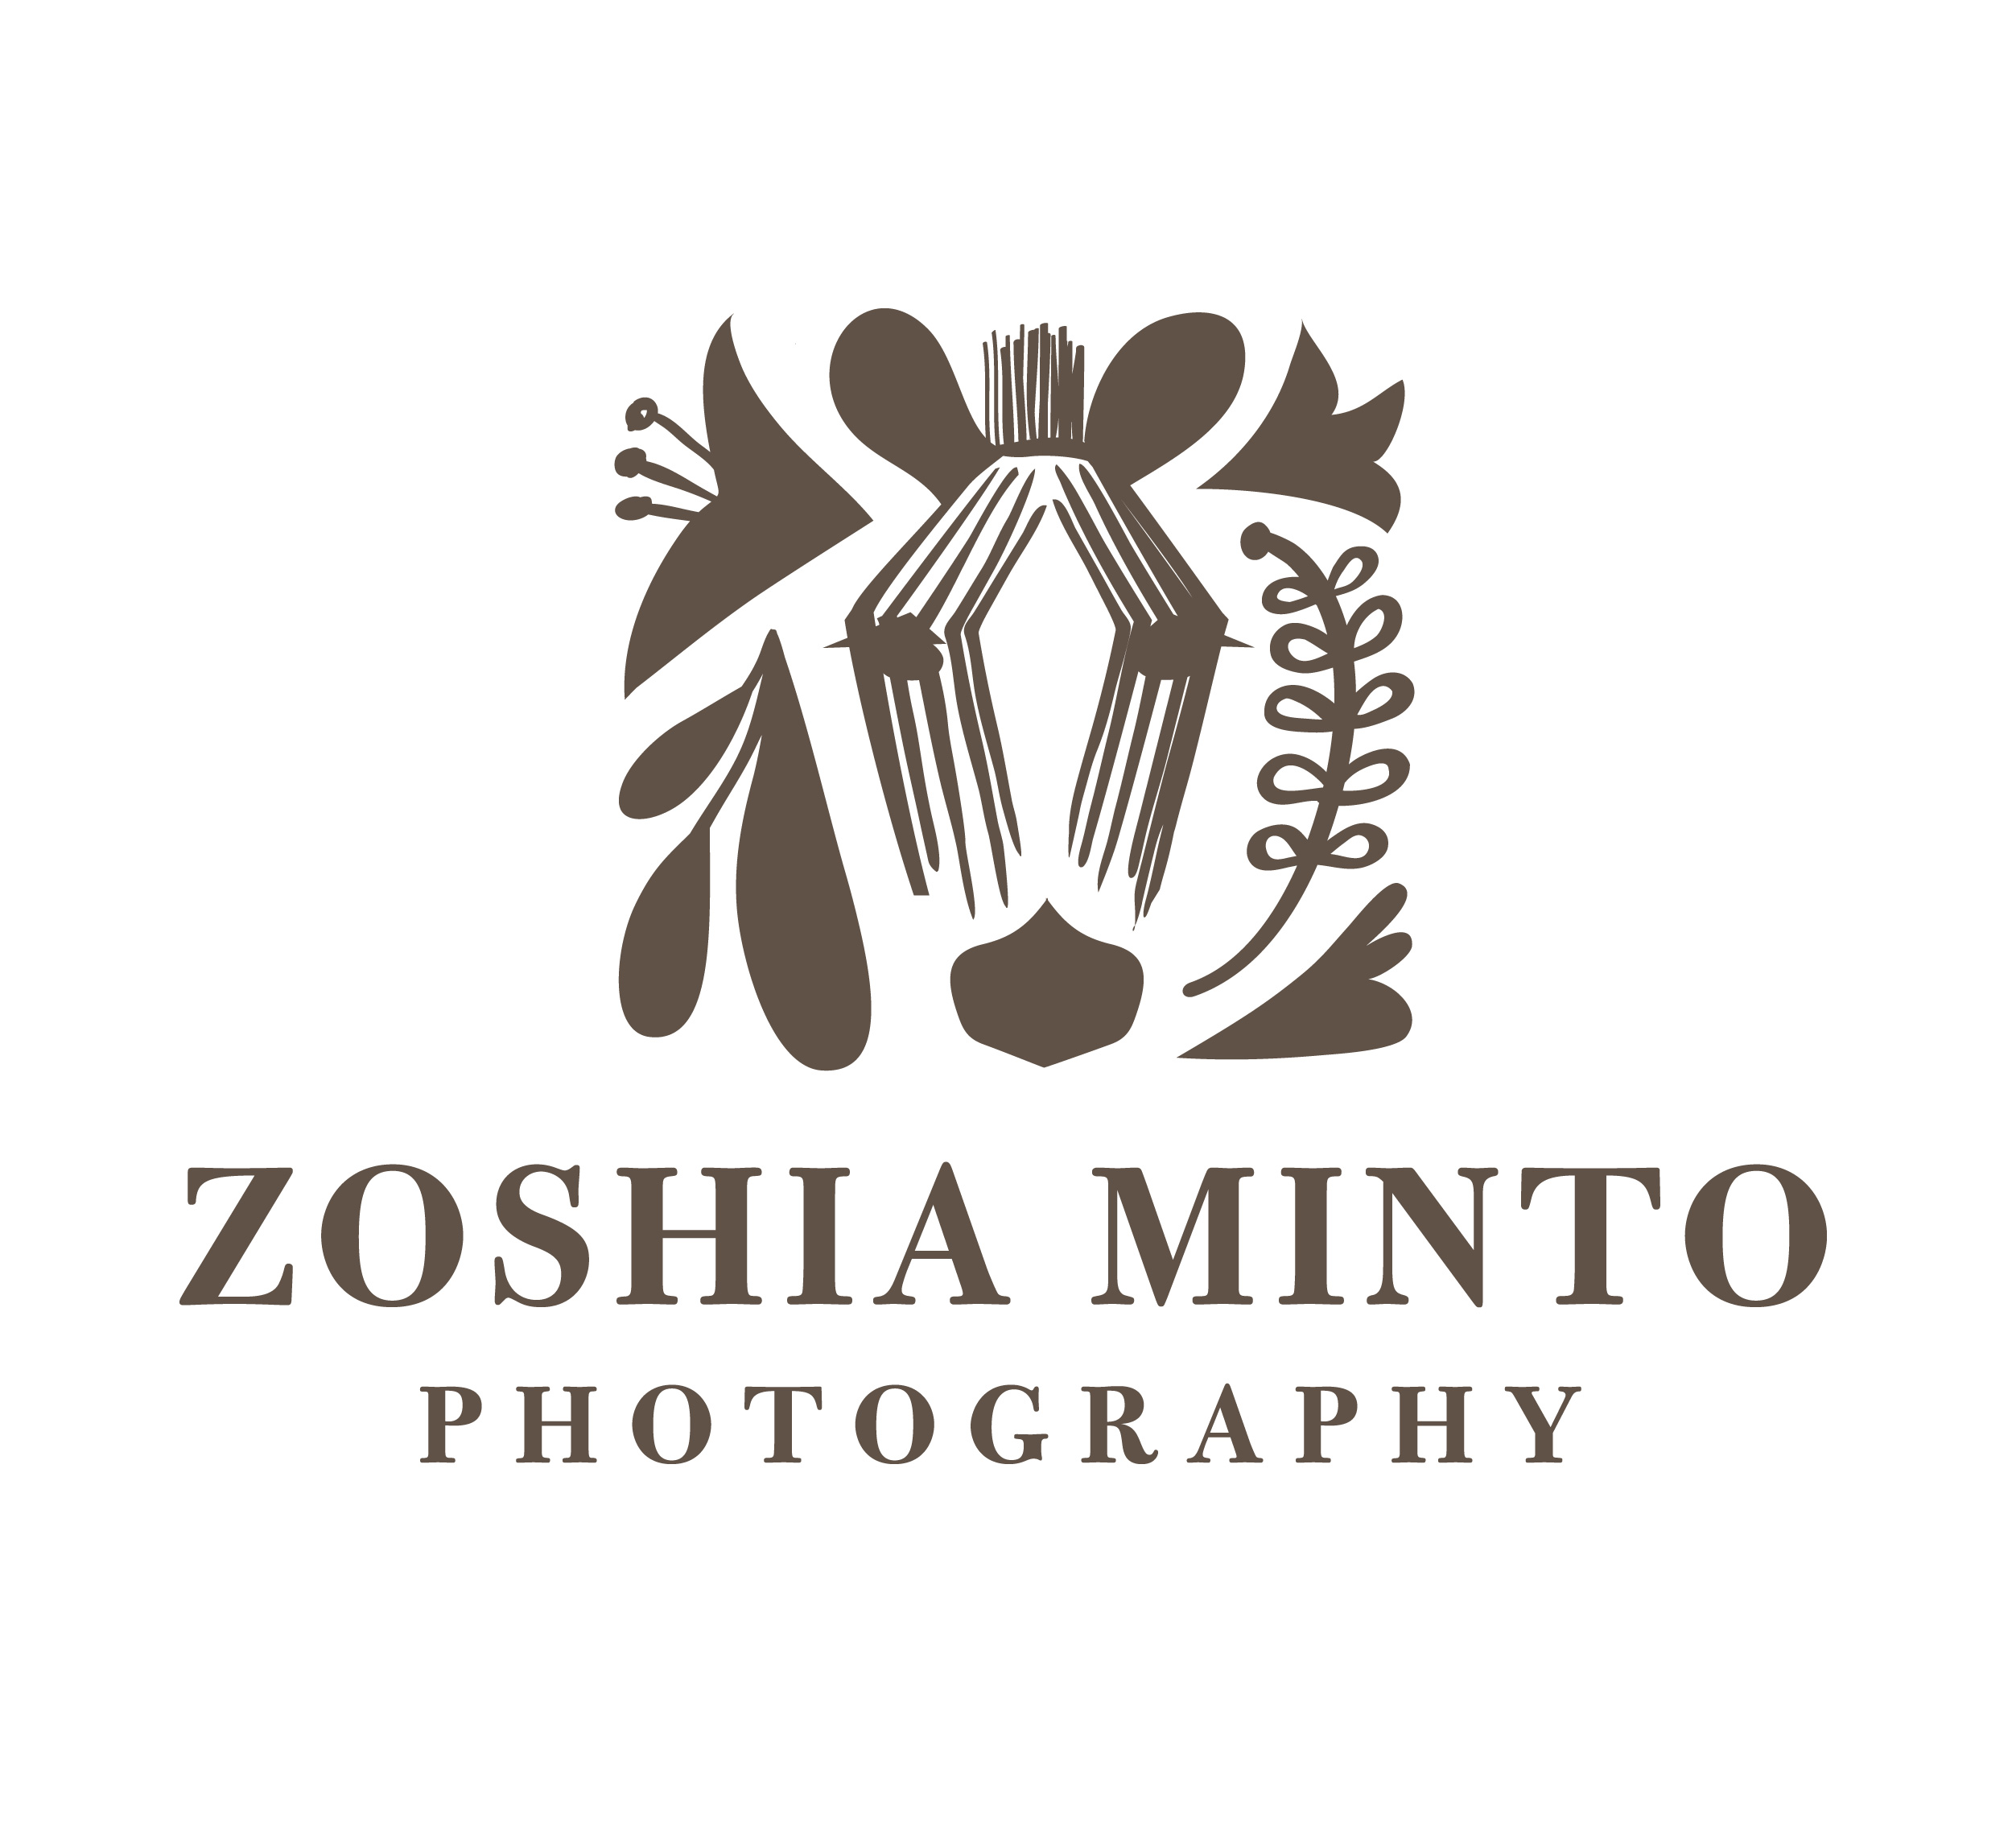 Zoshia Minto Photography - I created this logo for photographer, Zoshia Minto. She wanted a logo that would appeal to wedding photography clients yet feel personal at the same time. She wanted to incorporate a zebra into the logo, a reminder of her childhood in Kenya.I used the face of a zebra in a subtle and abstract way. I took a hand drawn approach, creating many options before translating the final logo into a digital format.